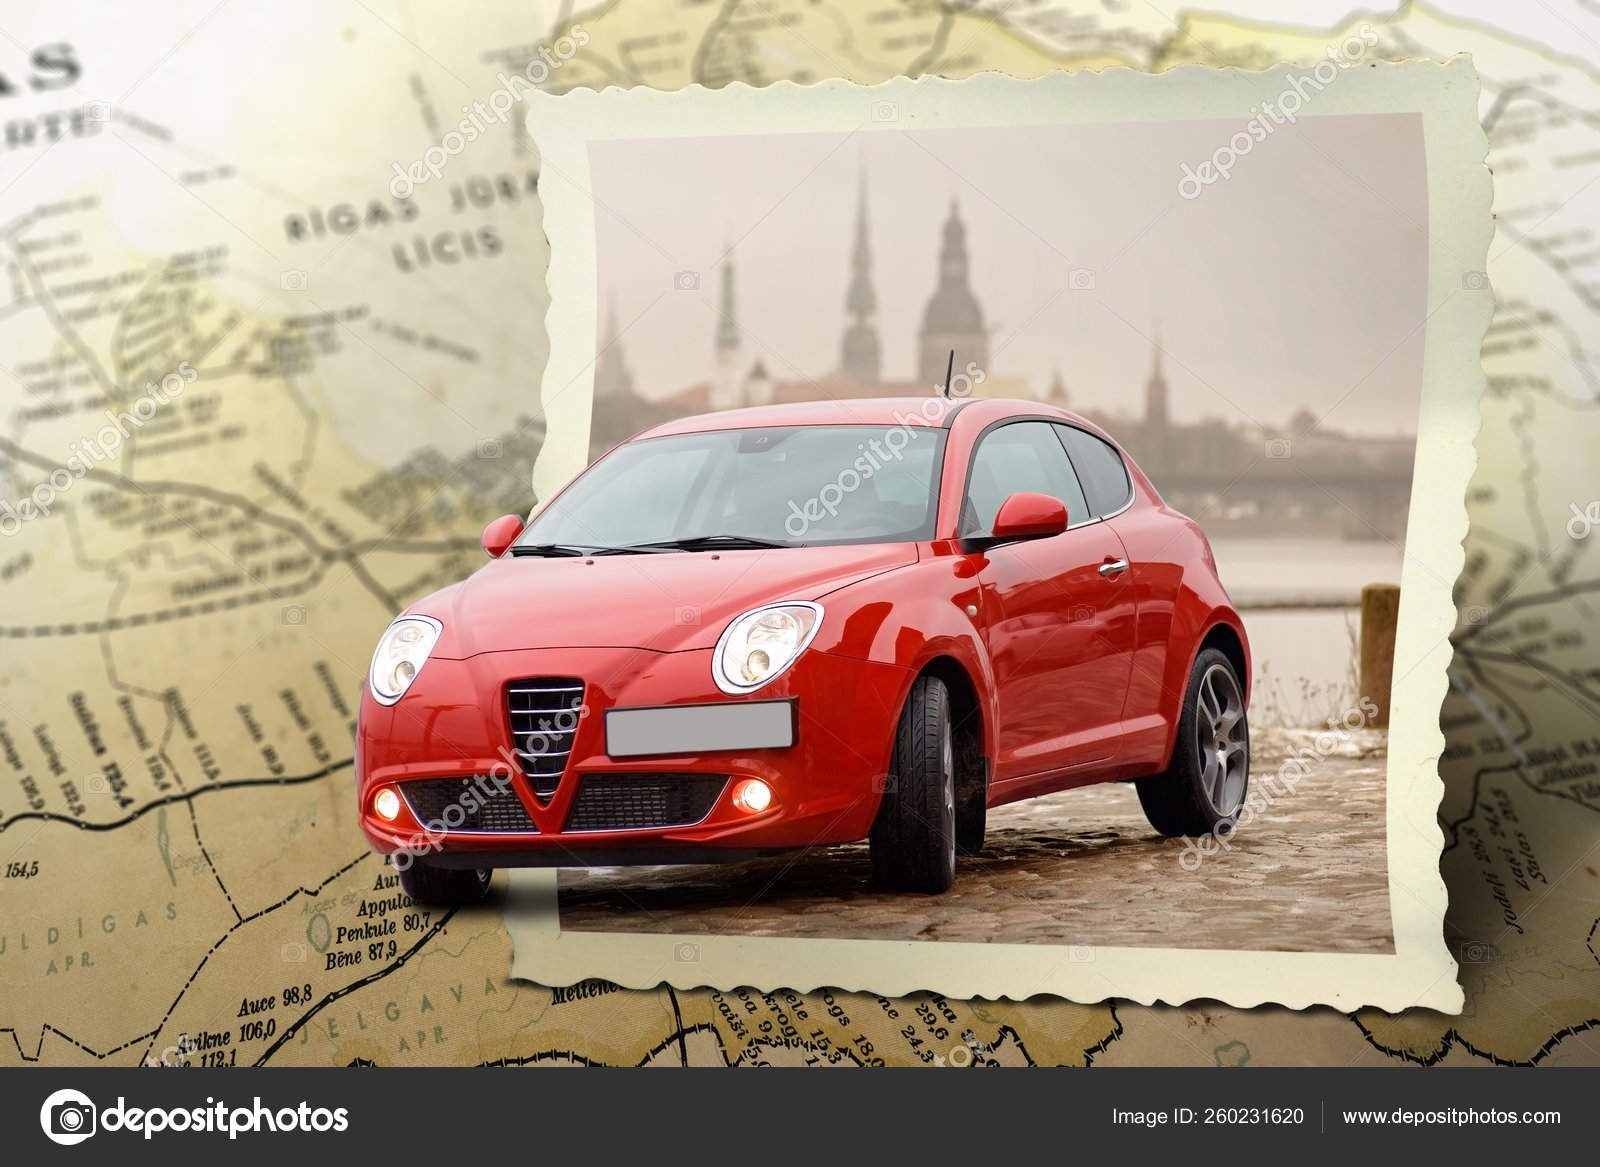 Photo Composition Red Car Driving Out Map Stock Editorial Photo C Yayimages 260231620